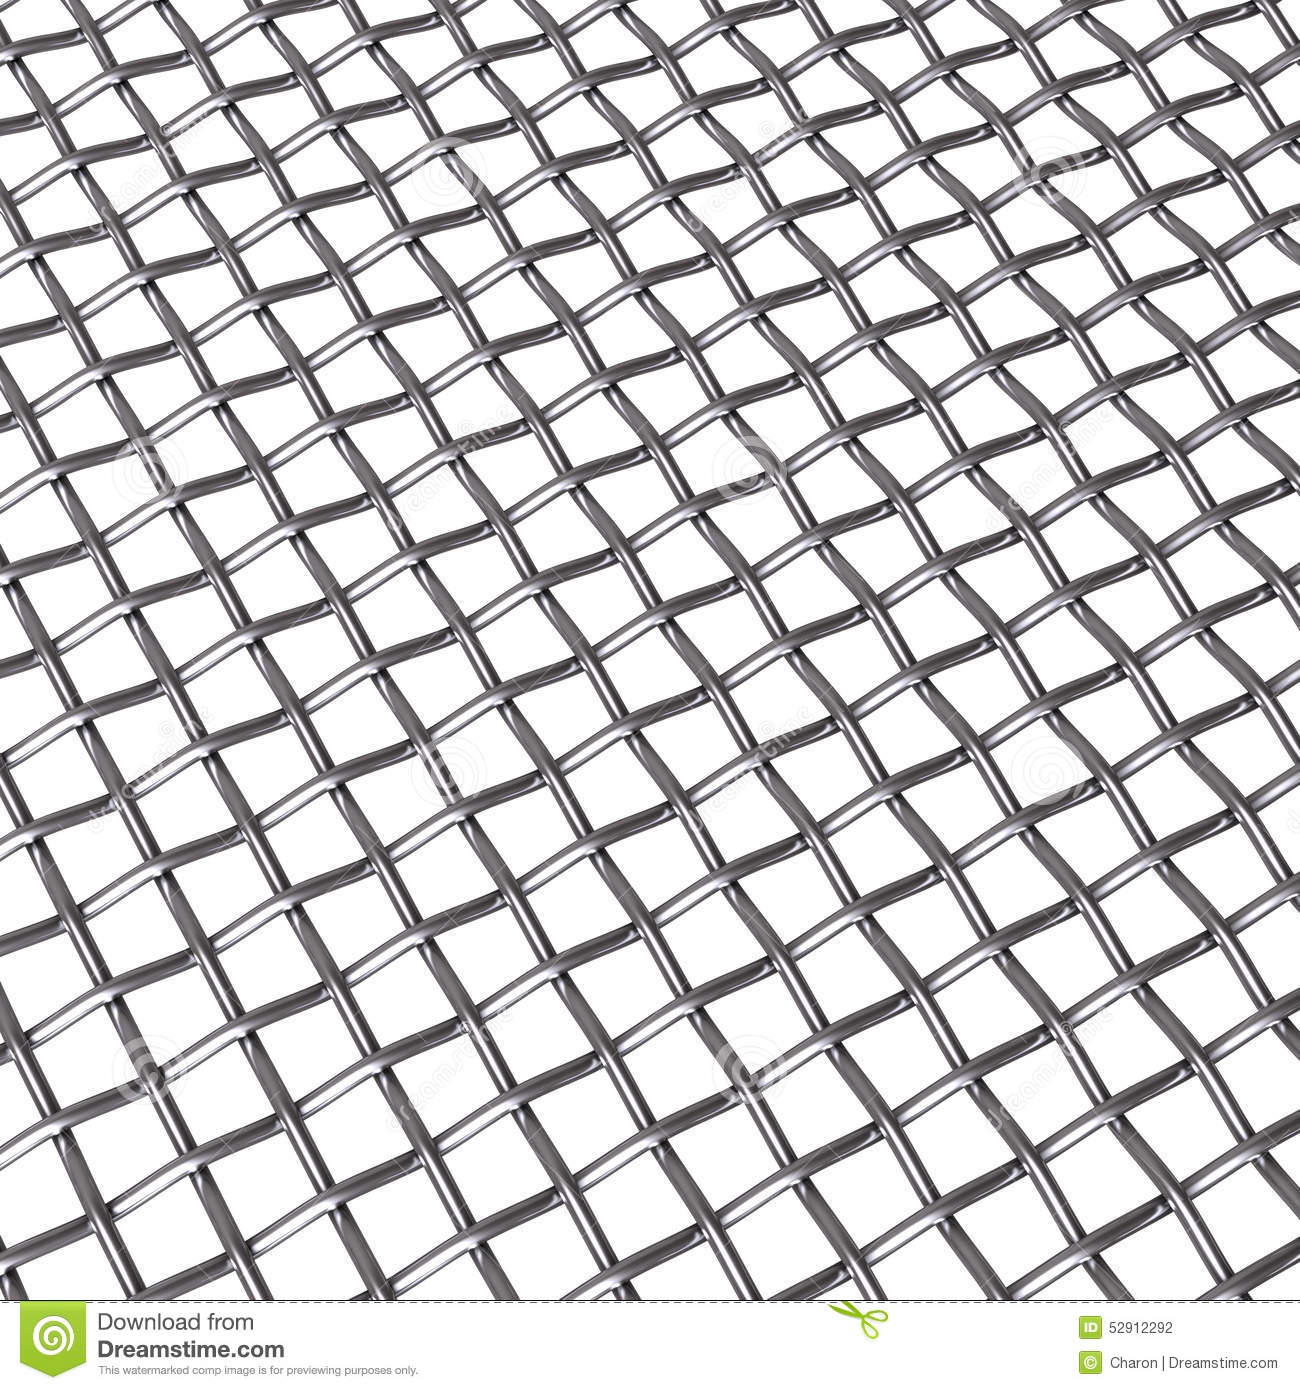 Steel wire mesh texture stock photo. Image of partition.